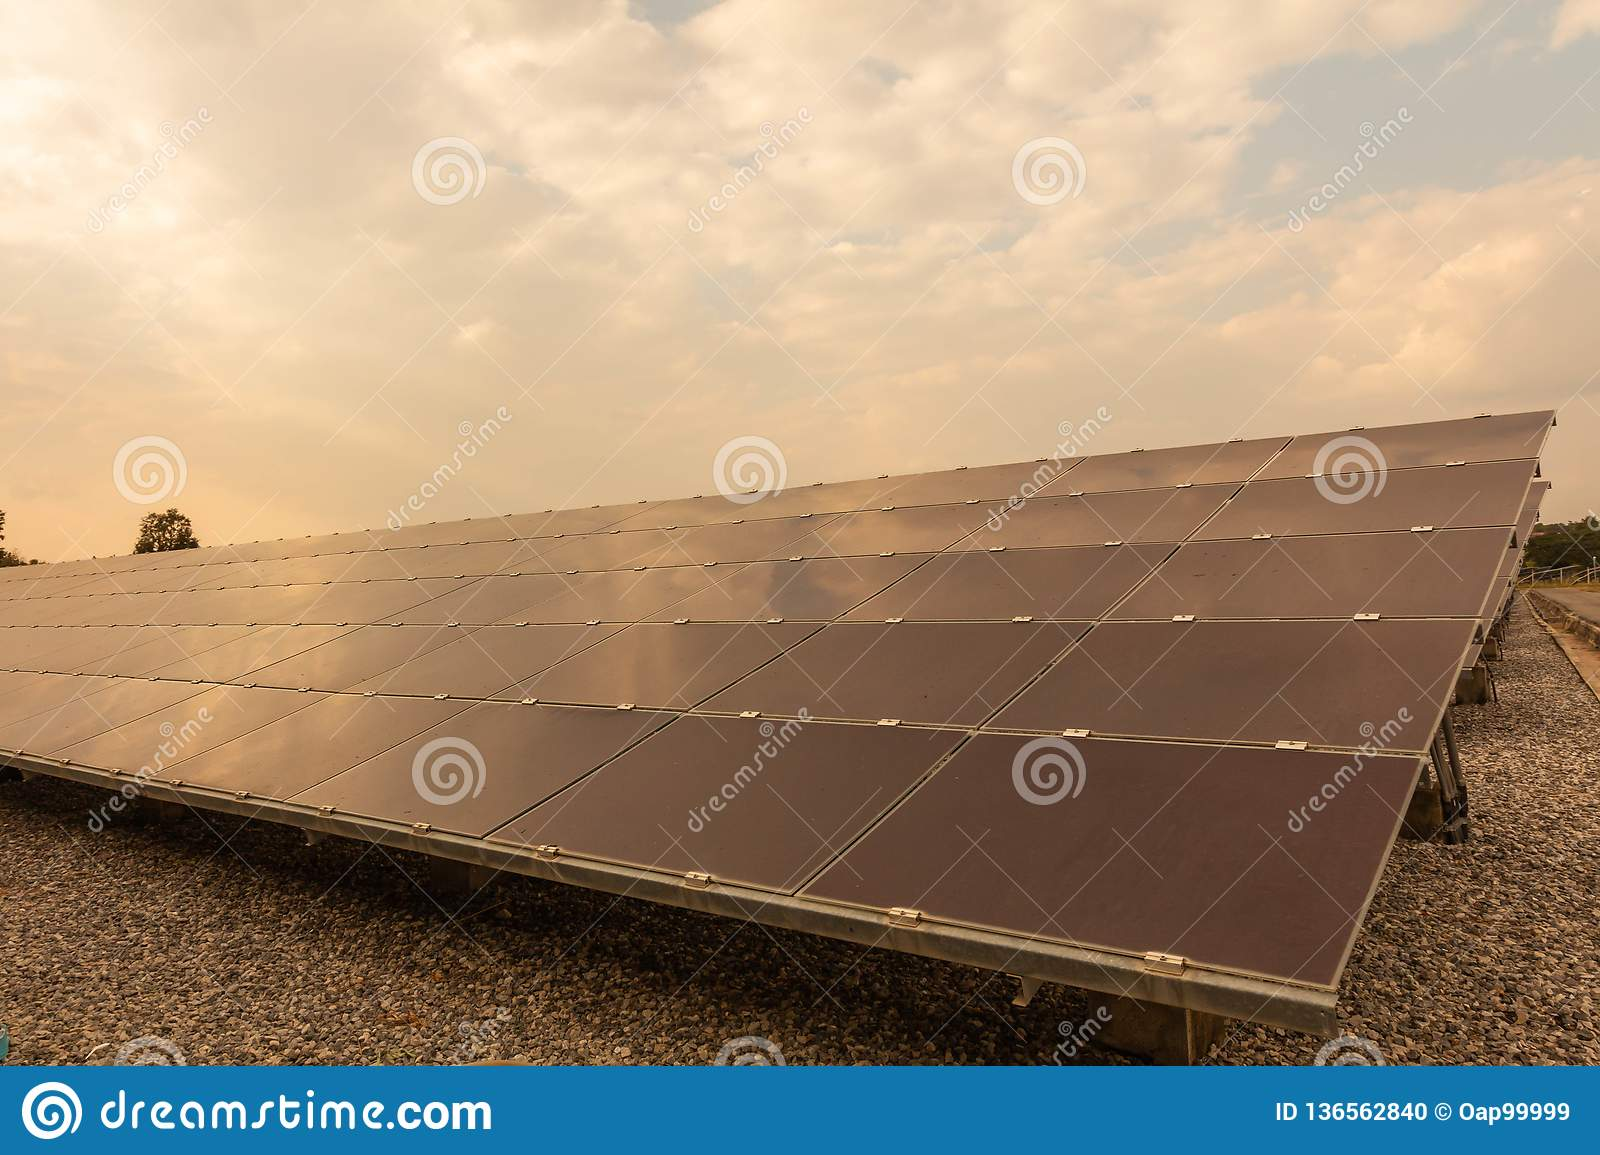 Solar panel, alternative electricity source - concept of sustainable resources, And this is the solar panel mono type